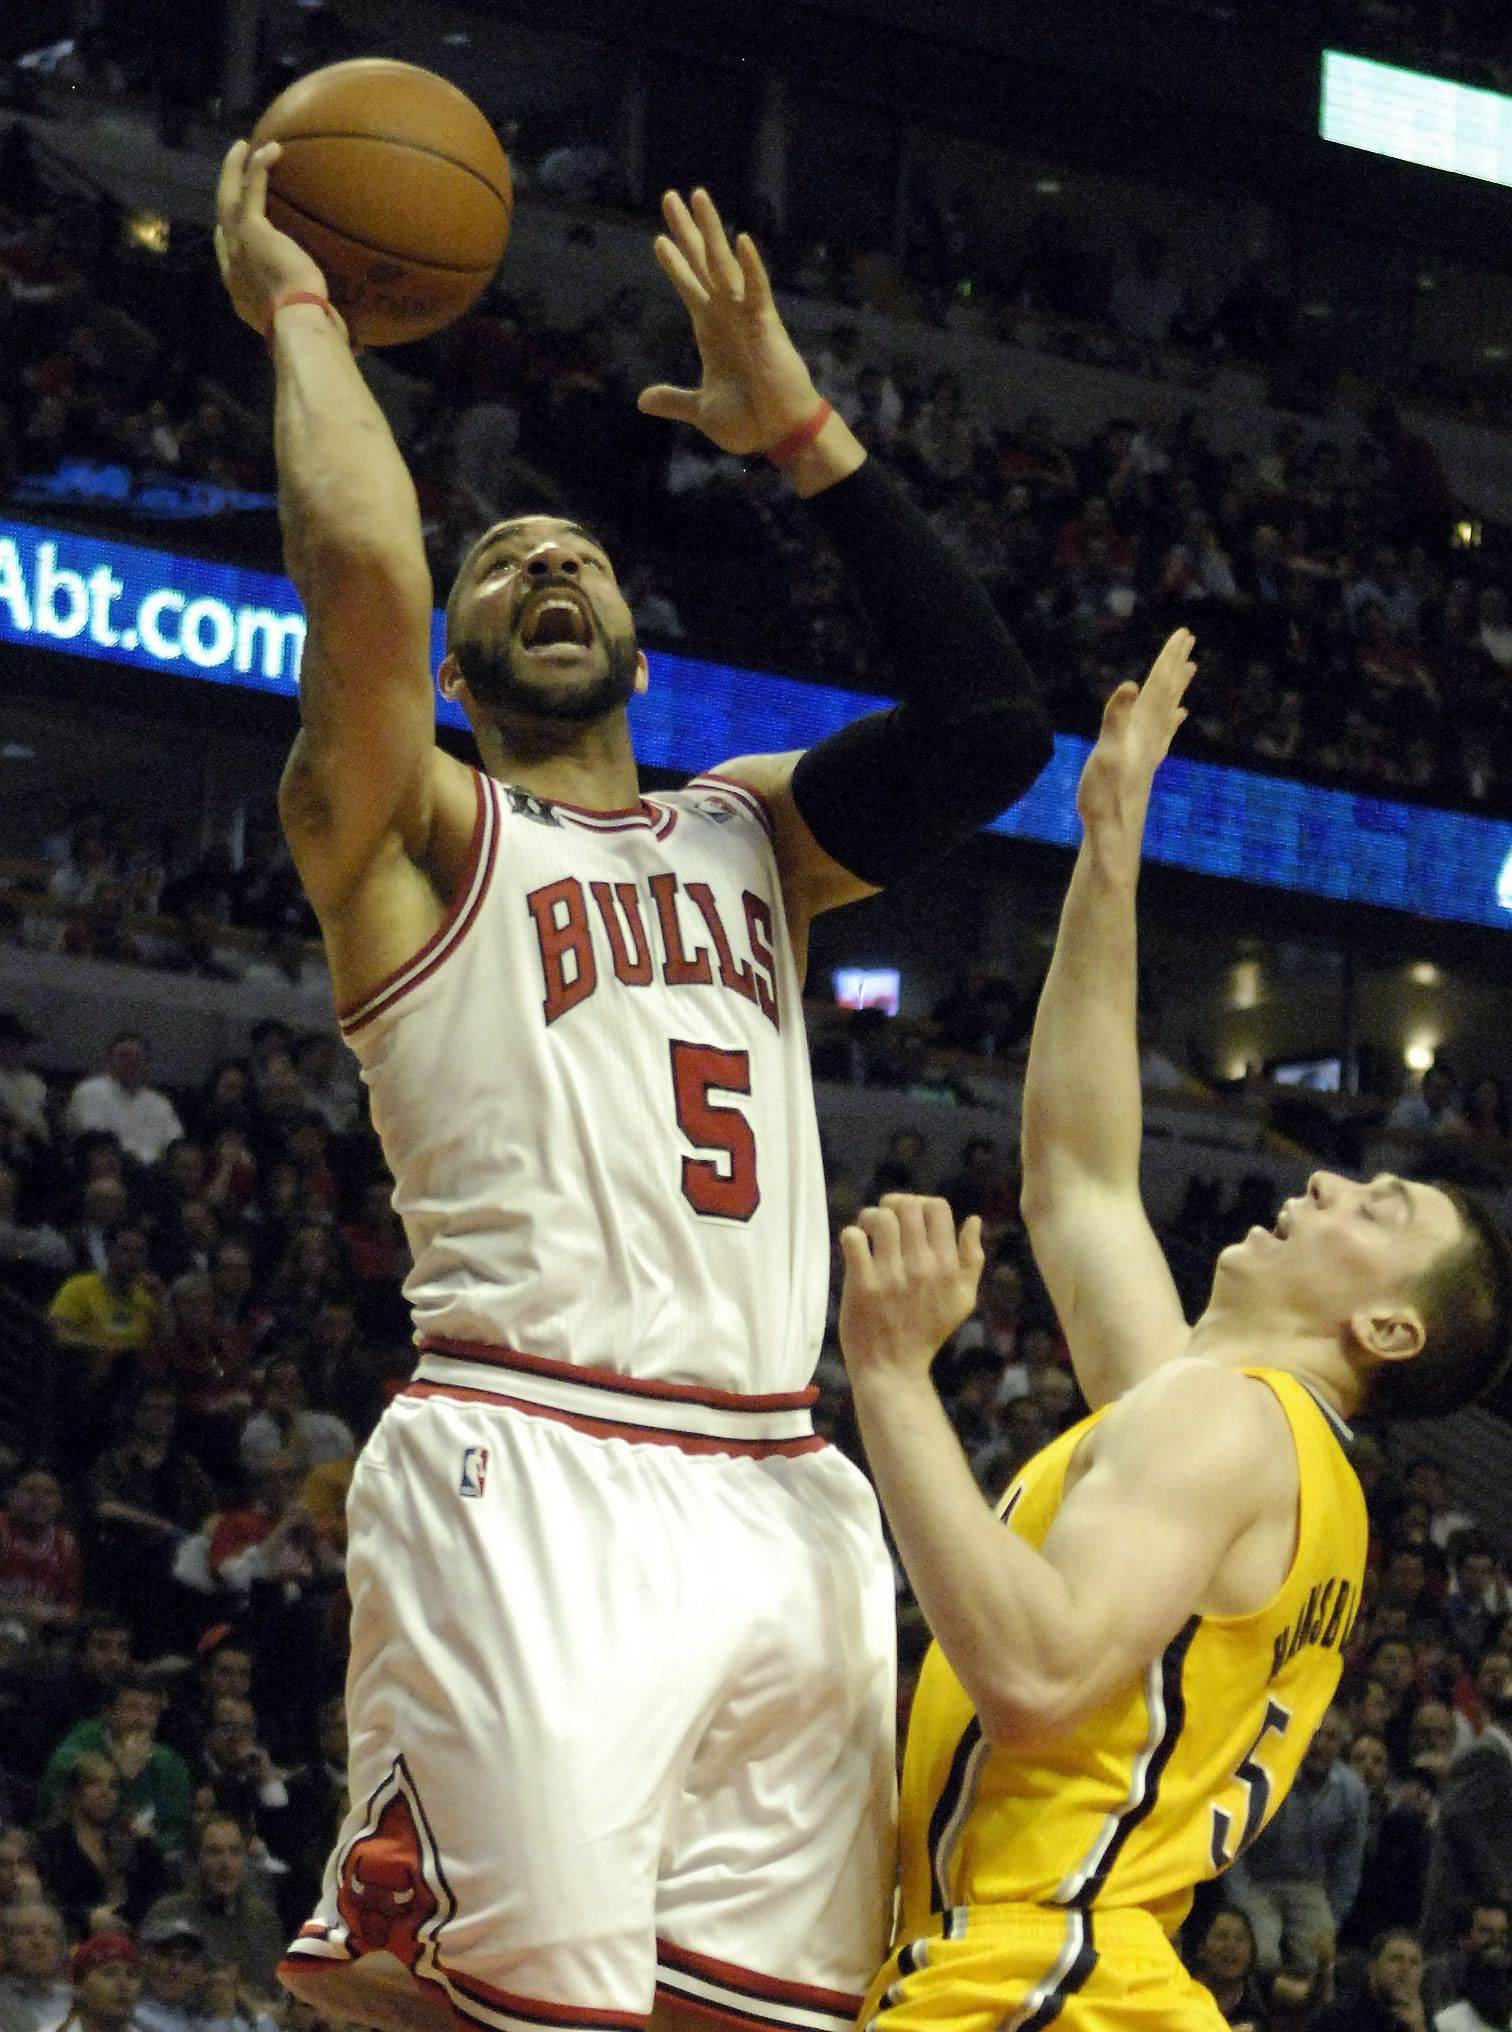 Power forward Carlos Boozer misses a shot during game 5 of the NBA Eastern Conference quarterfinals in Chicago Tuesday. He made just 1 of 5 shots.